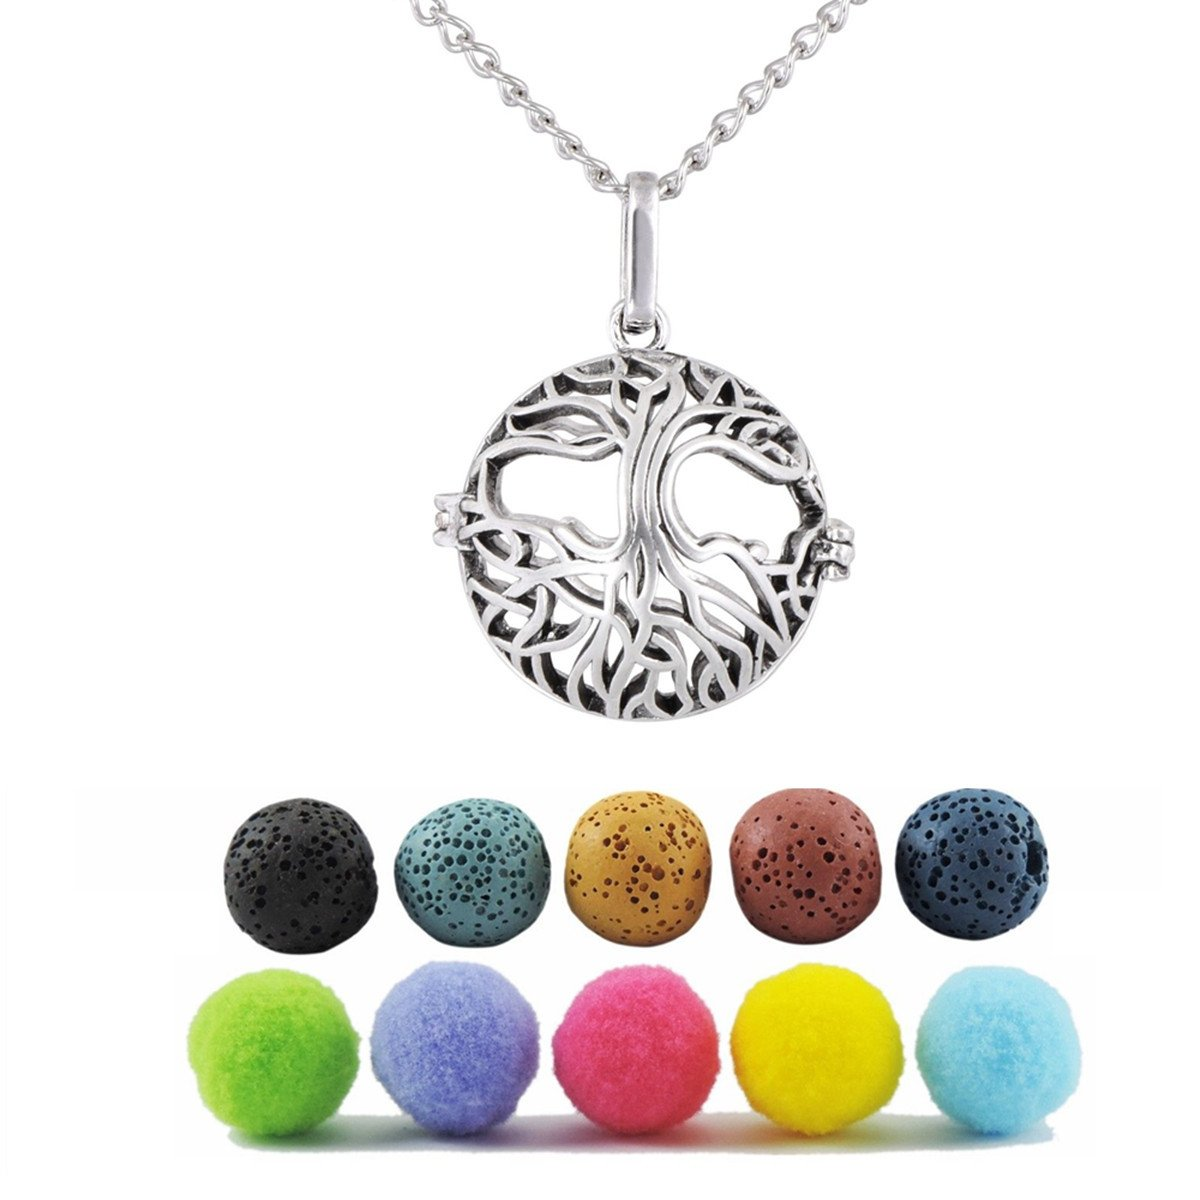 GraceAngie Tree of Life Aromatherapy Essential Oil Diffuser Necklace Locket Pendant with 5 Lava Beads/Refill Pads CJ415+CJ401